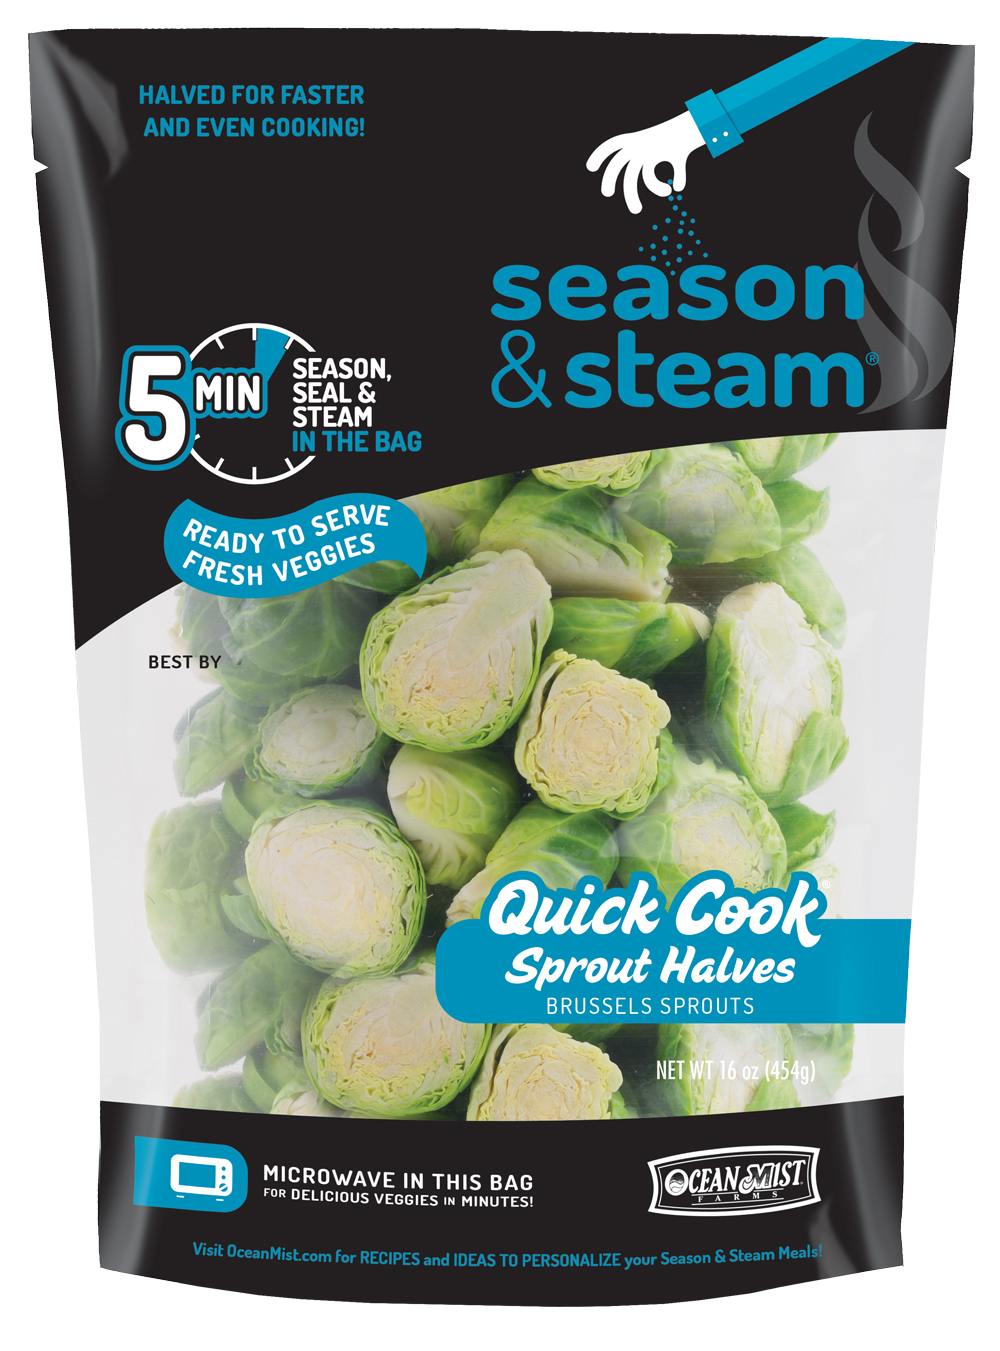 Season & Steam: Quick Cook Sprout Halves